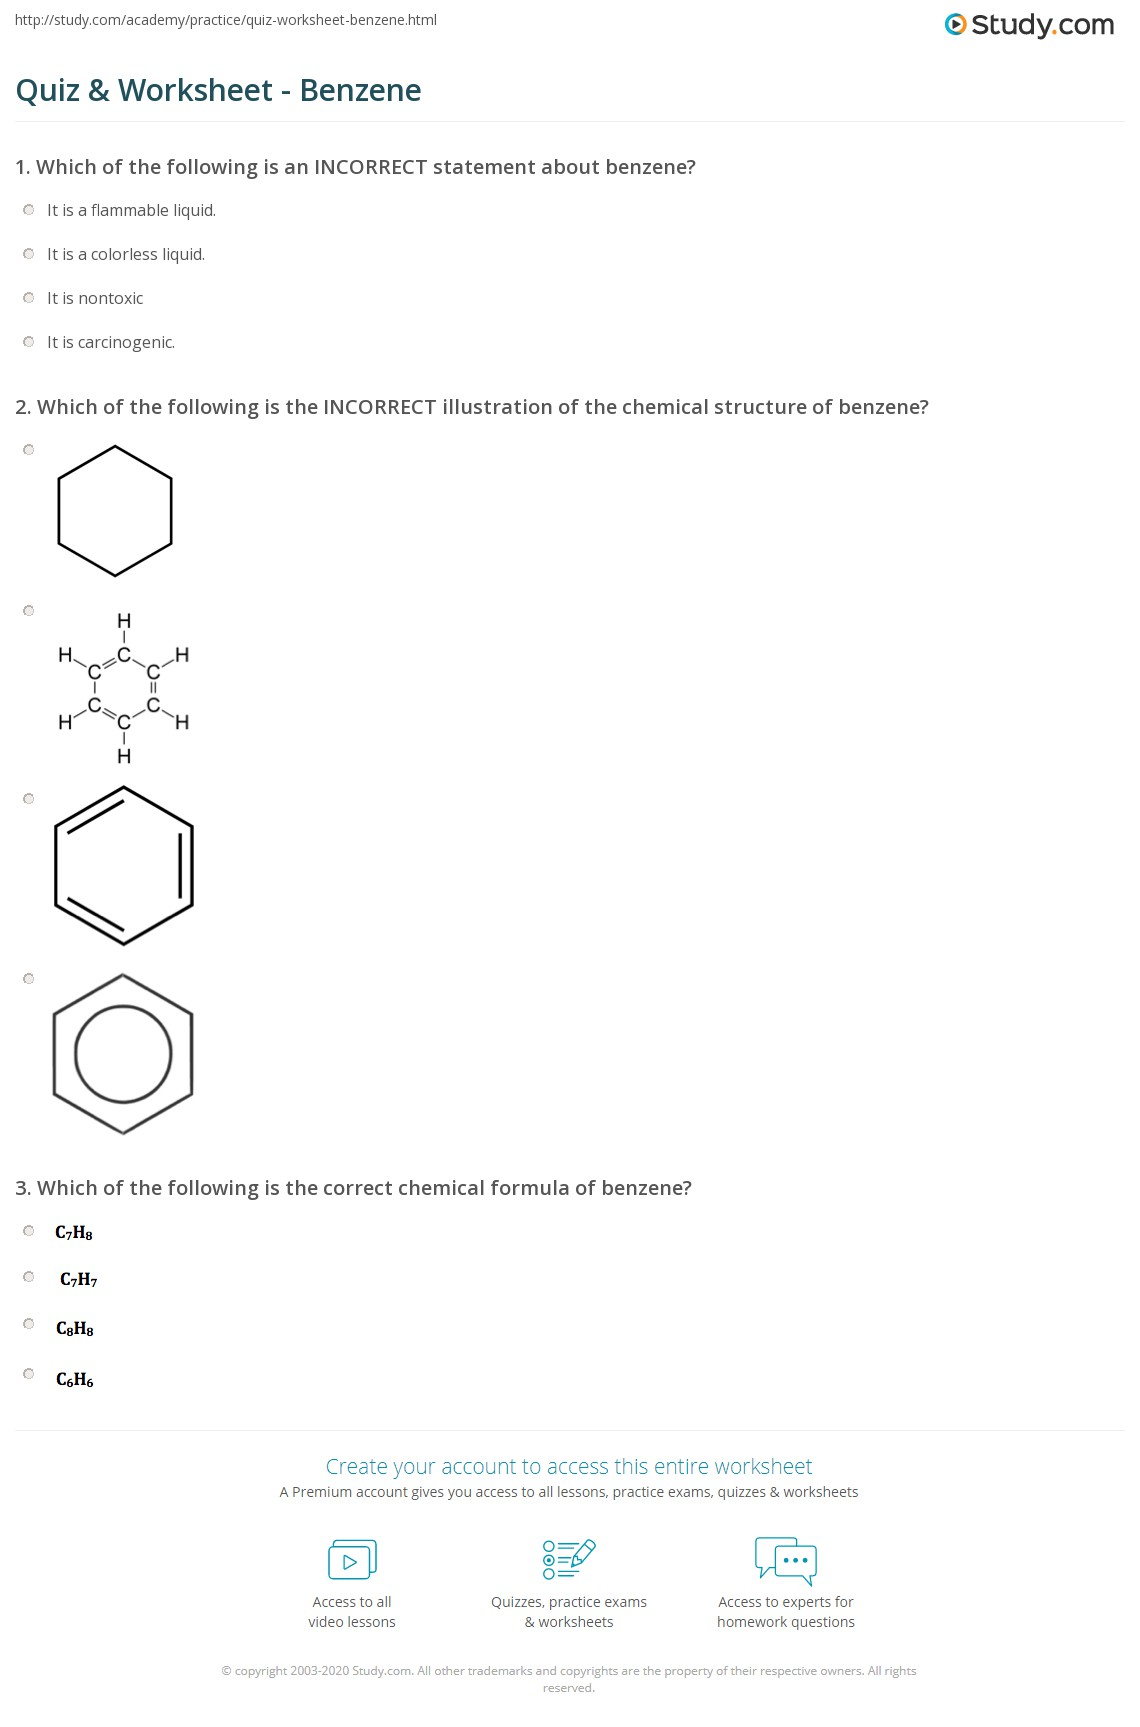 Quiz Worksheet Benzene Electronic Circuit Design Already Registered Login Here For Access